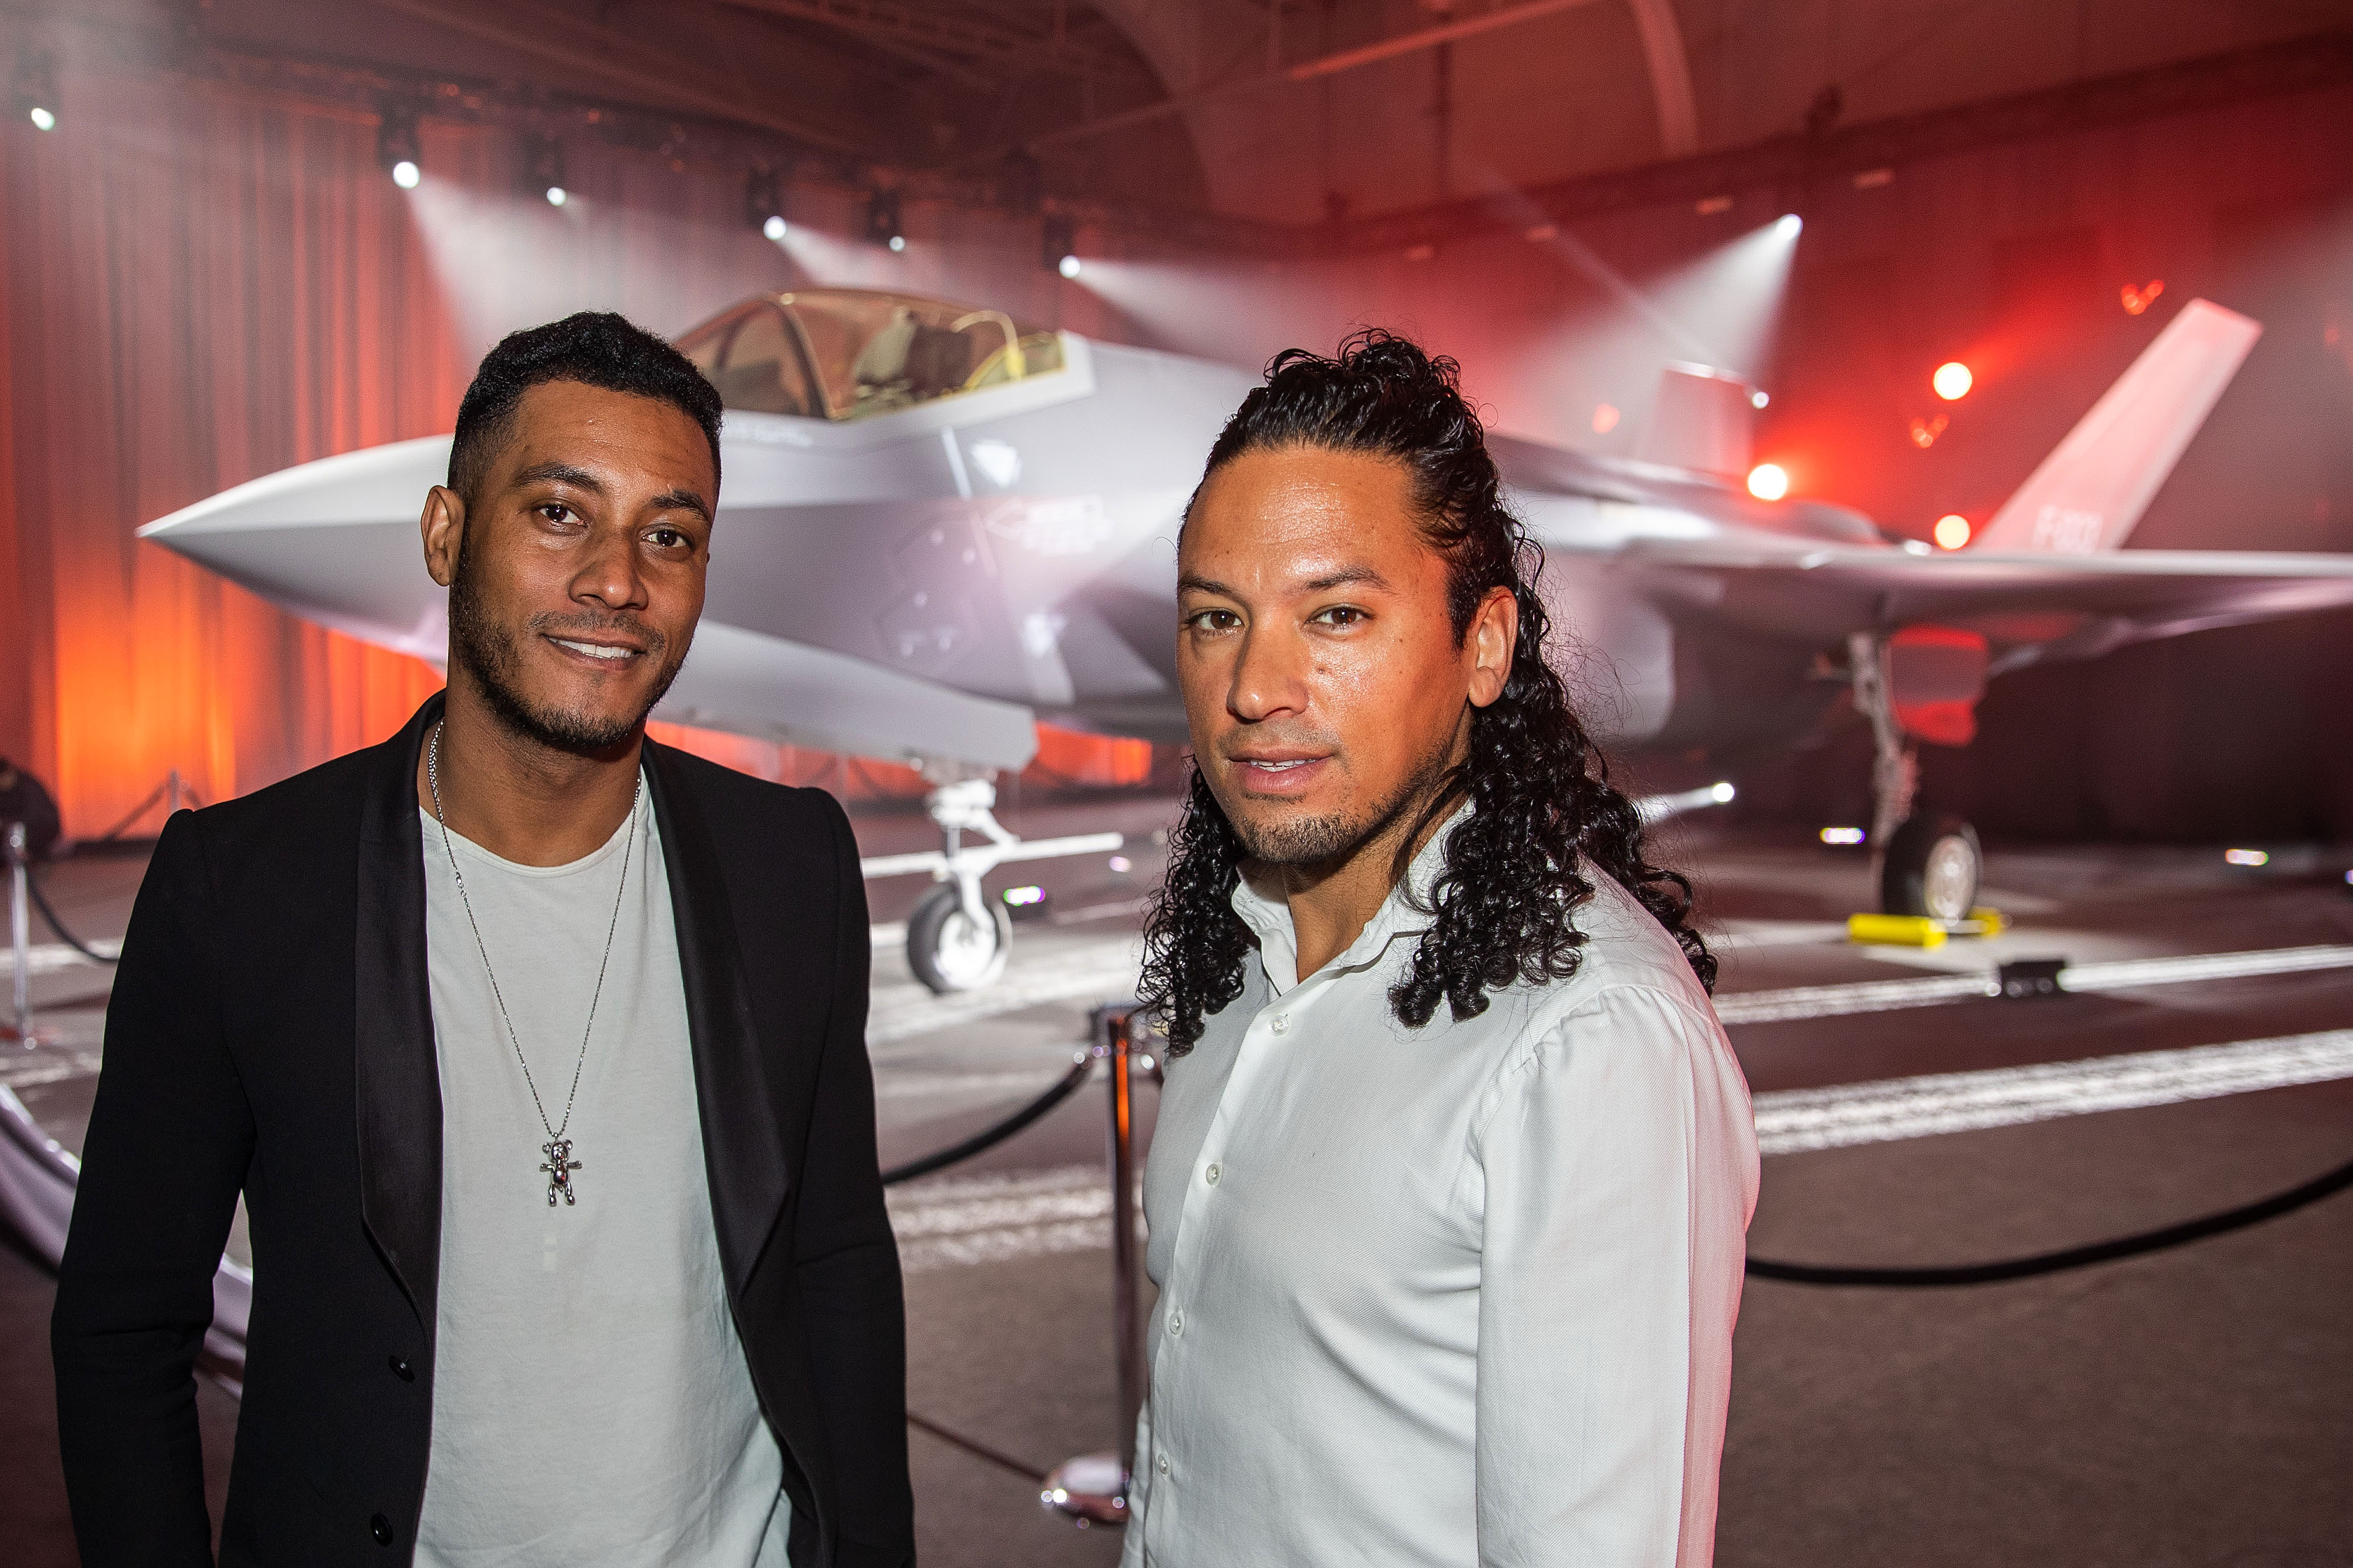 The 39-year old son of father (?) and mother(?) Ryan Marciano in 2020 photo. Ryan Marciano earned a unknown million dollar salary - leaving the net worth at 2 million in 2020